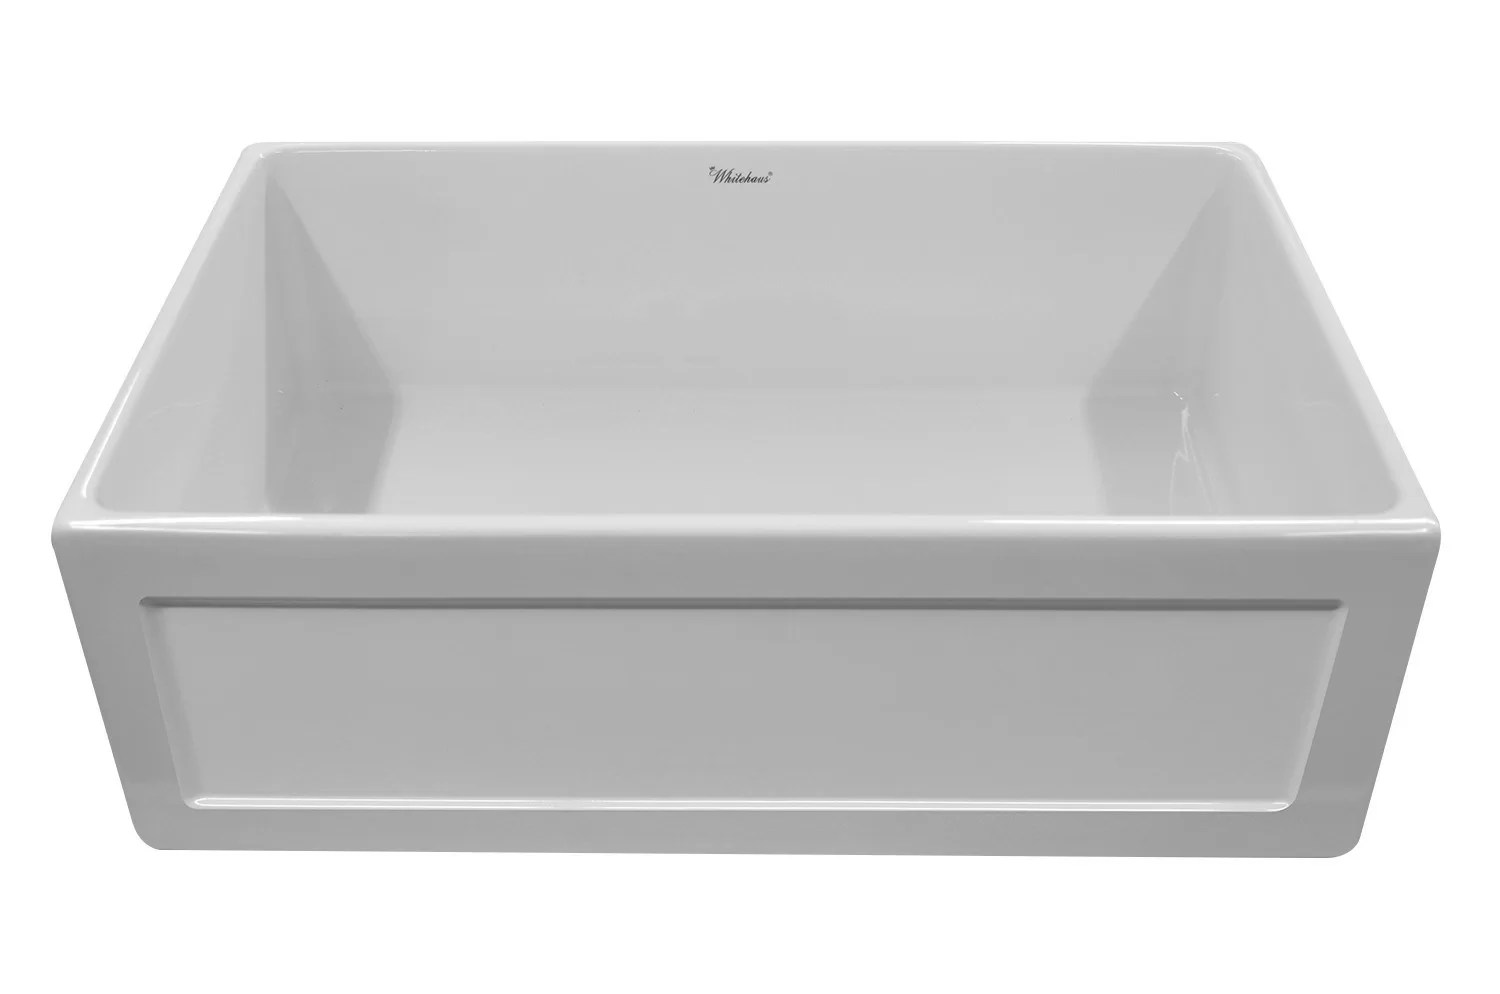 White Farmhouse Sinks For Sale Fireclay 33